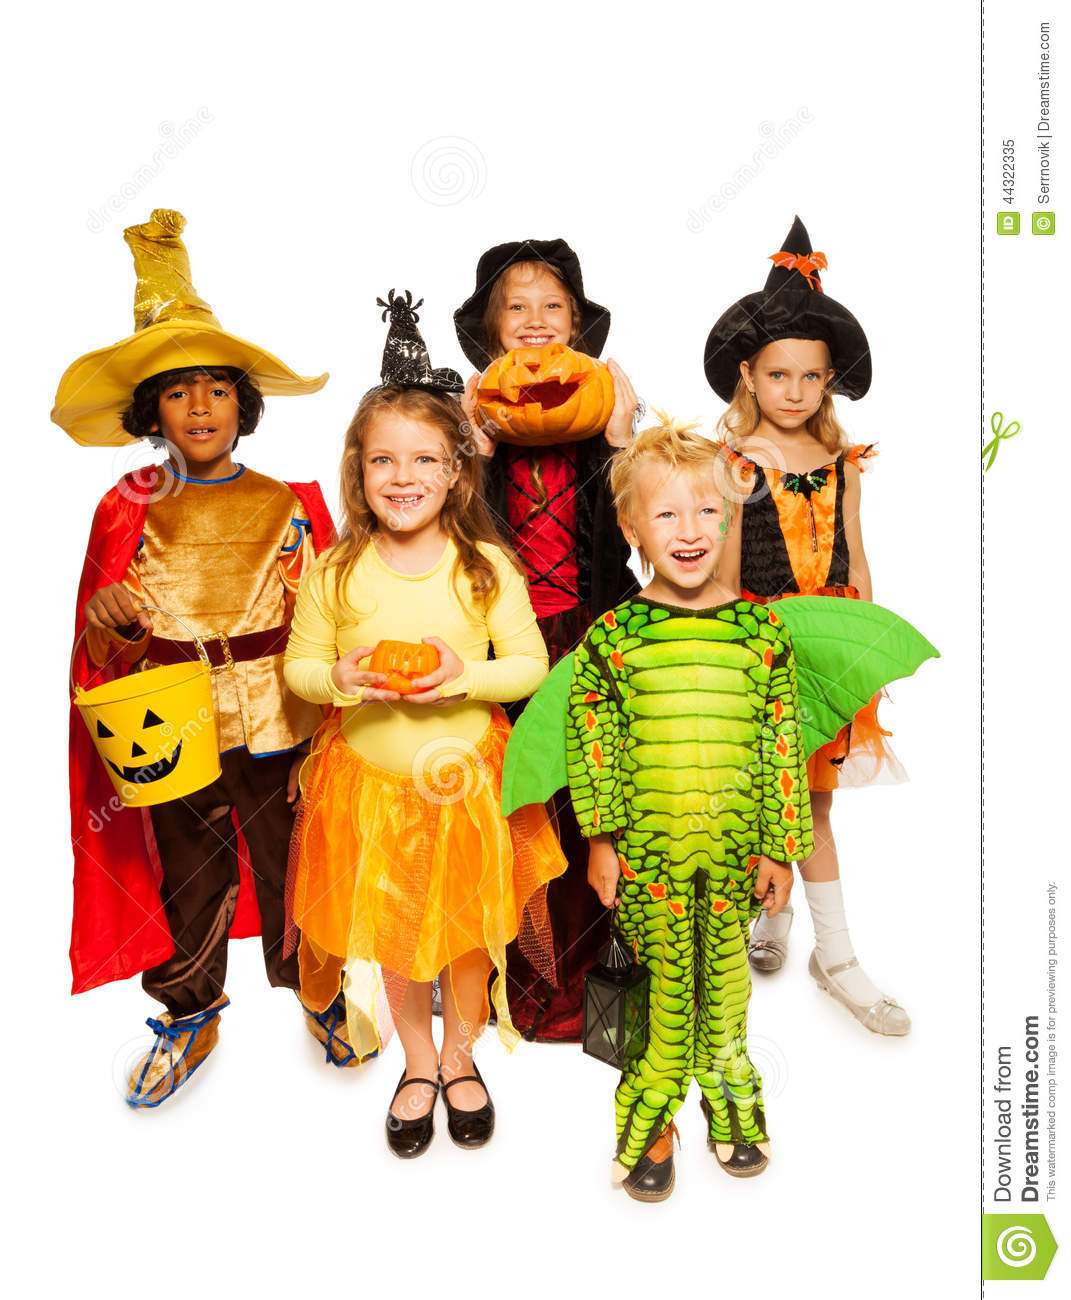 download kids with pumpkin and in halloween costumes stock image image of halloween caucasian